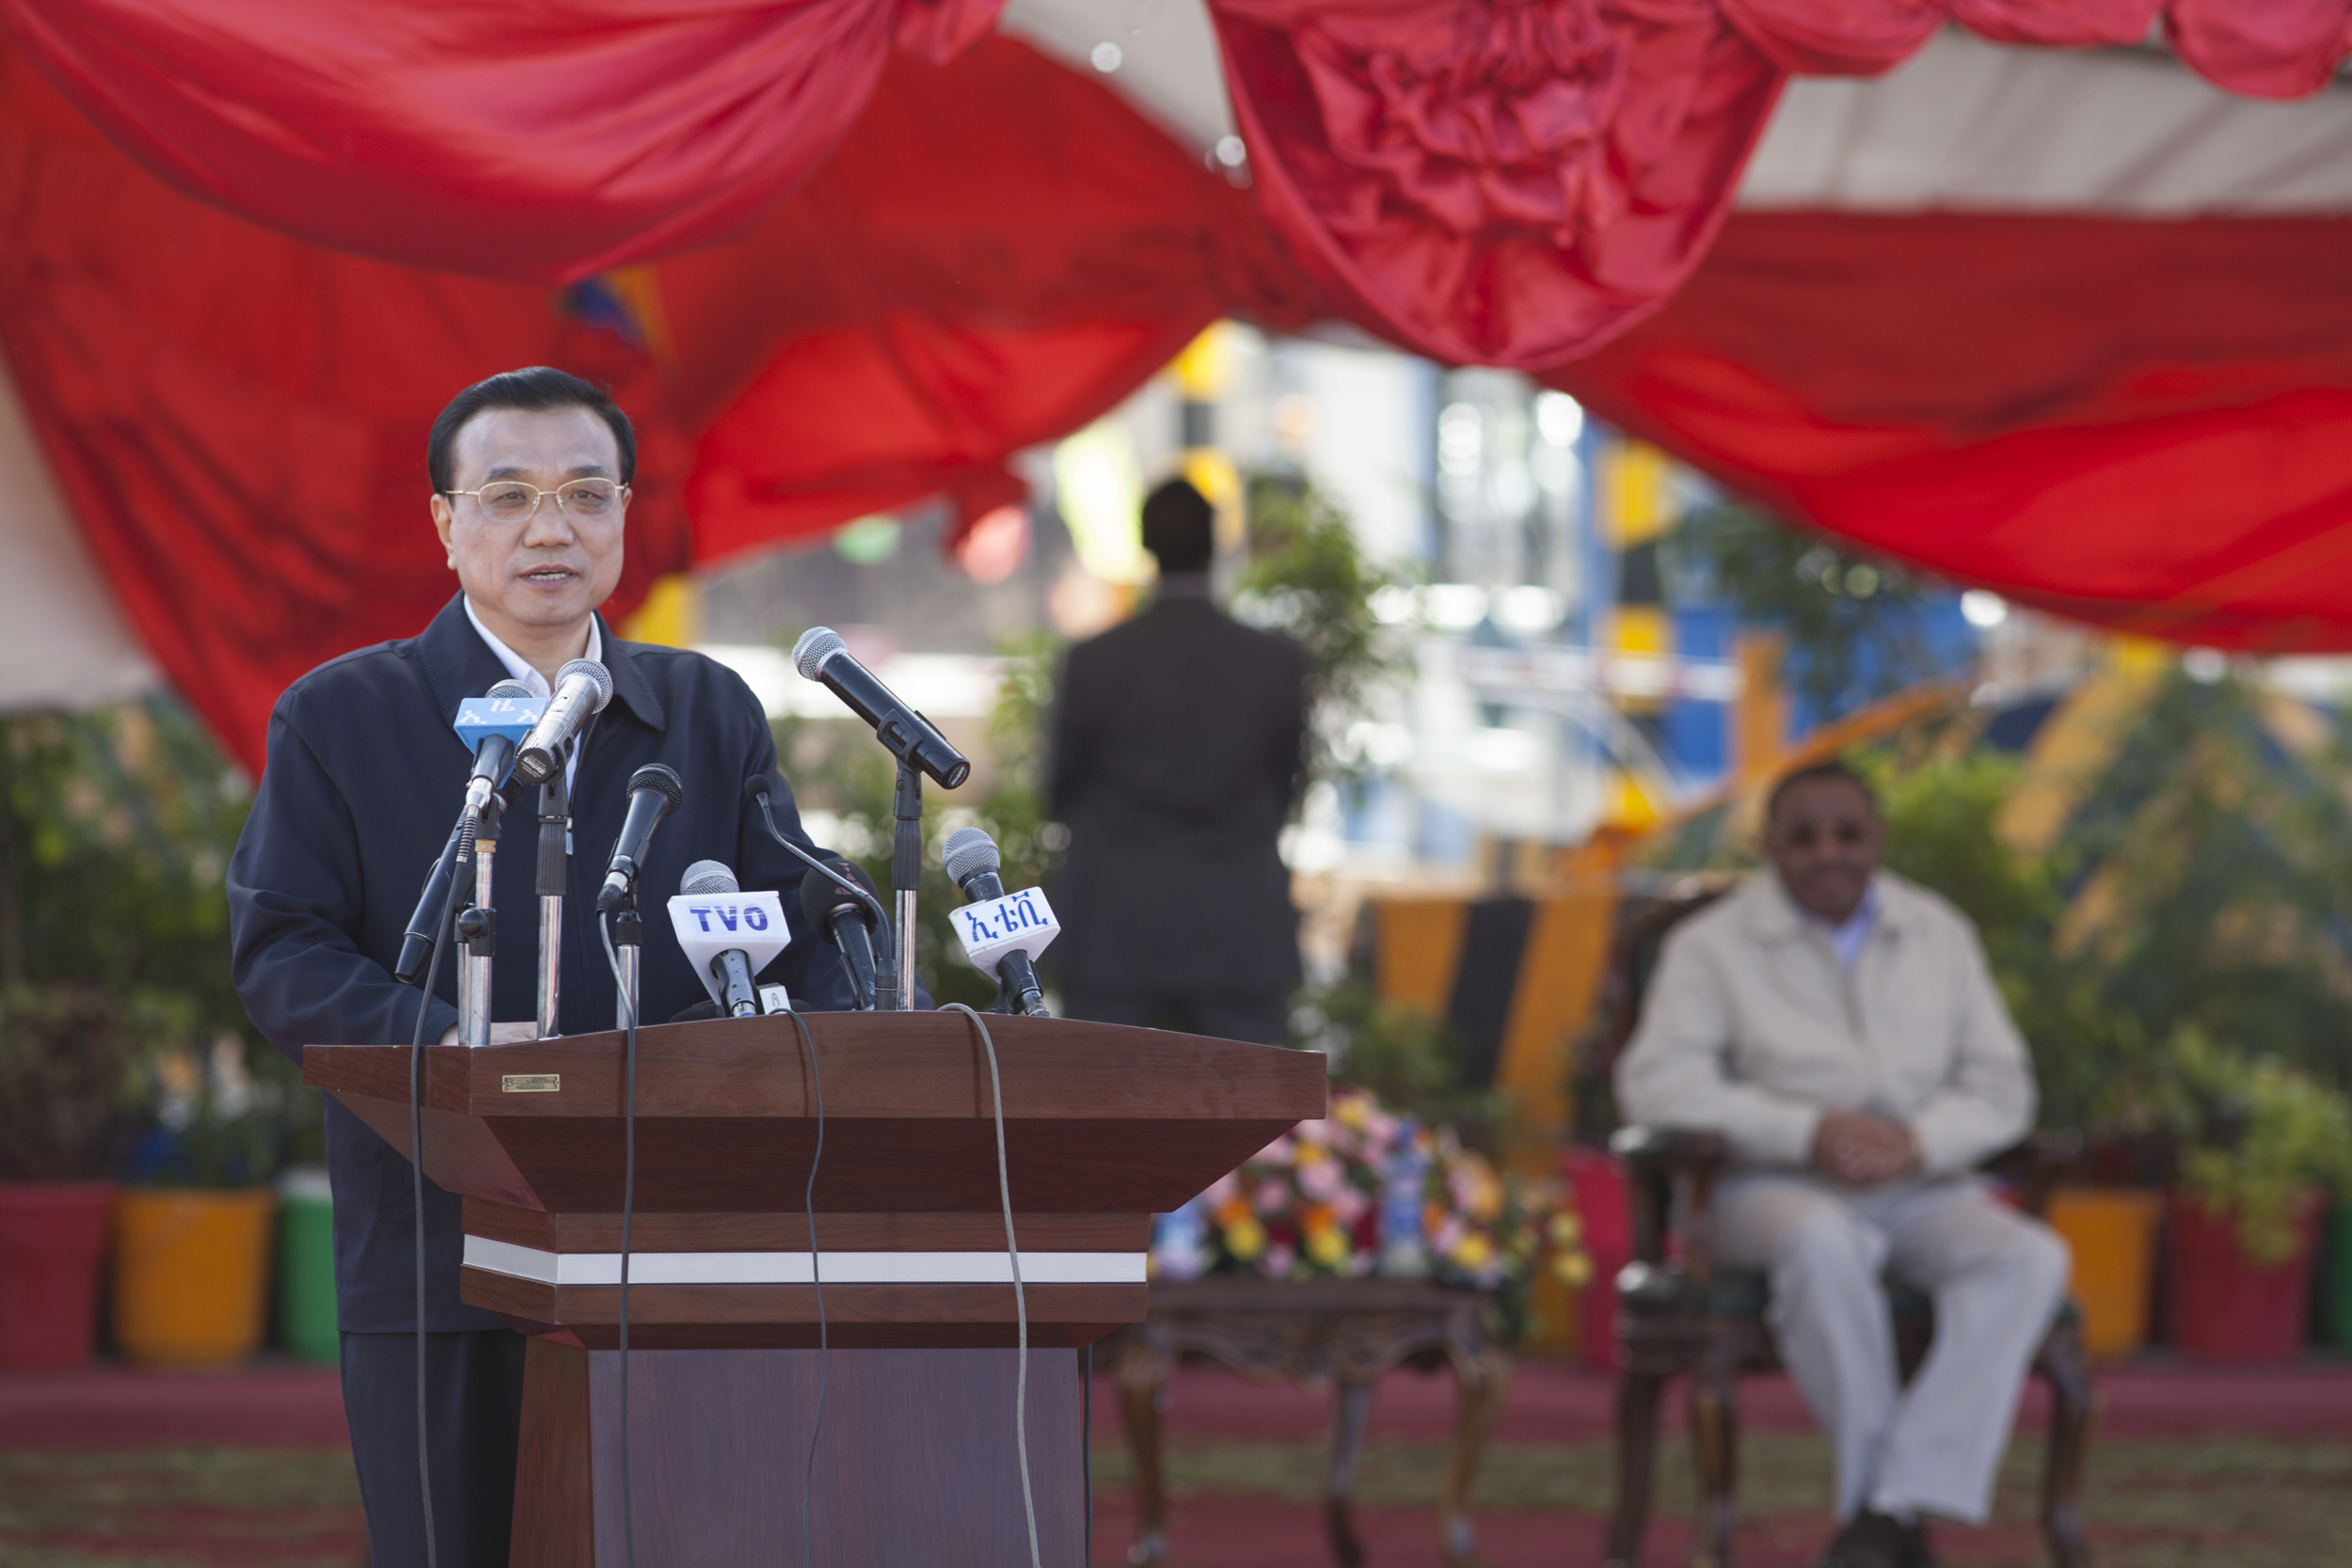 Li Keqiang, Chinese Prime Minister Li Keqiang gives a speech at the site of the Addis Ababa Adama toll road on May 5, 2014, after he christened the site. Li arrived in Ethiopia for the start of a four-nation African tour, his first visit to the continent since assuming his position a little over a year ago